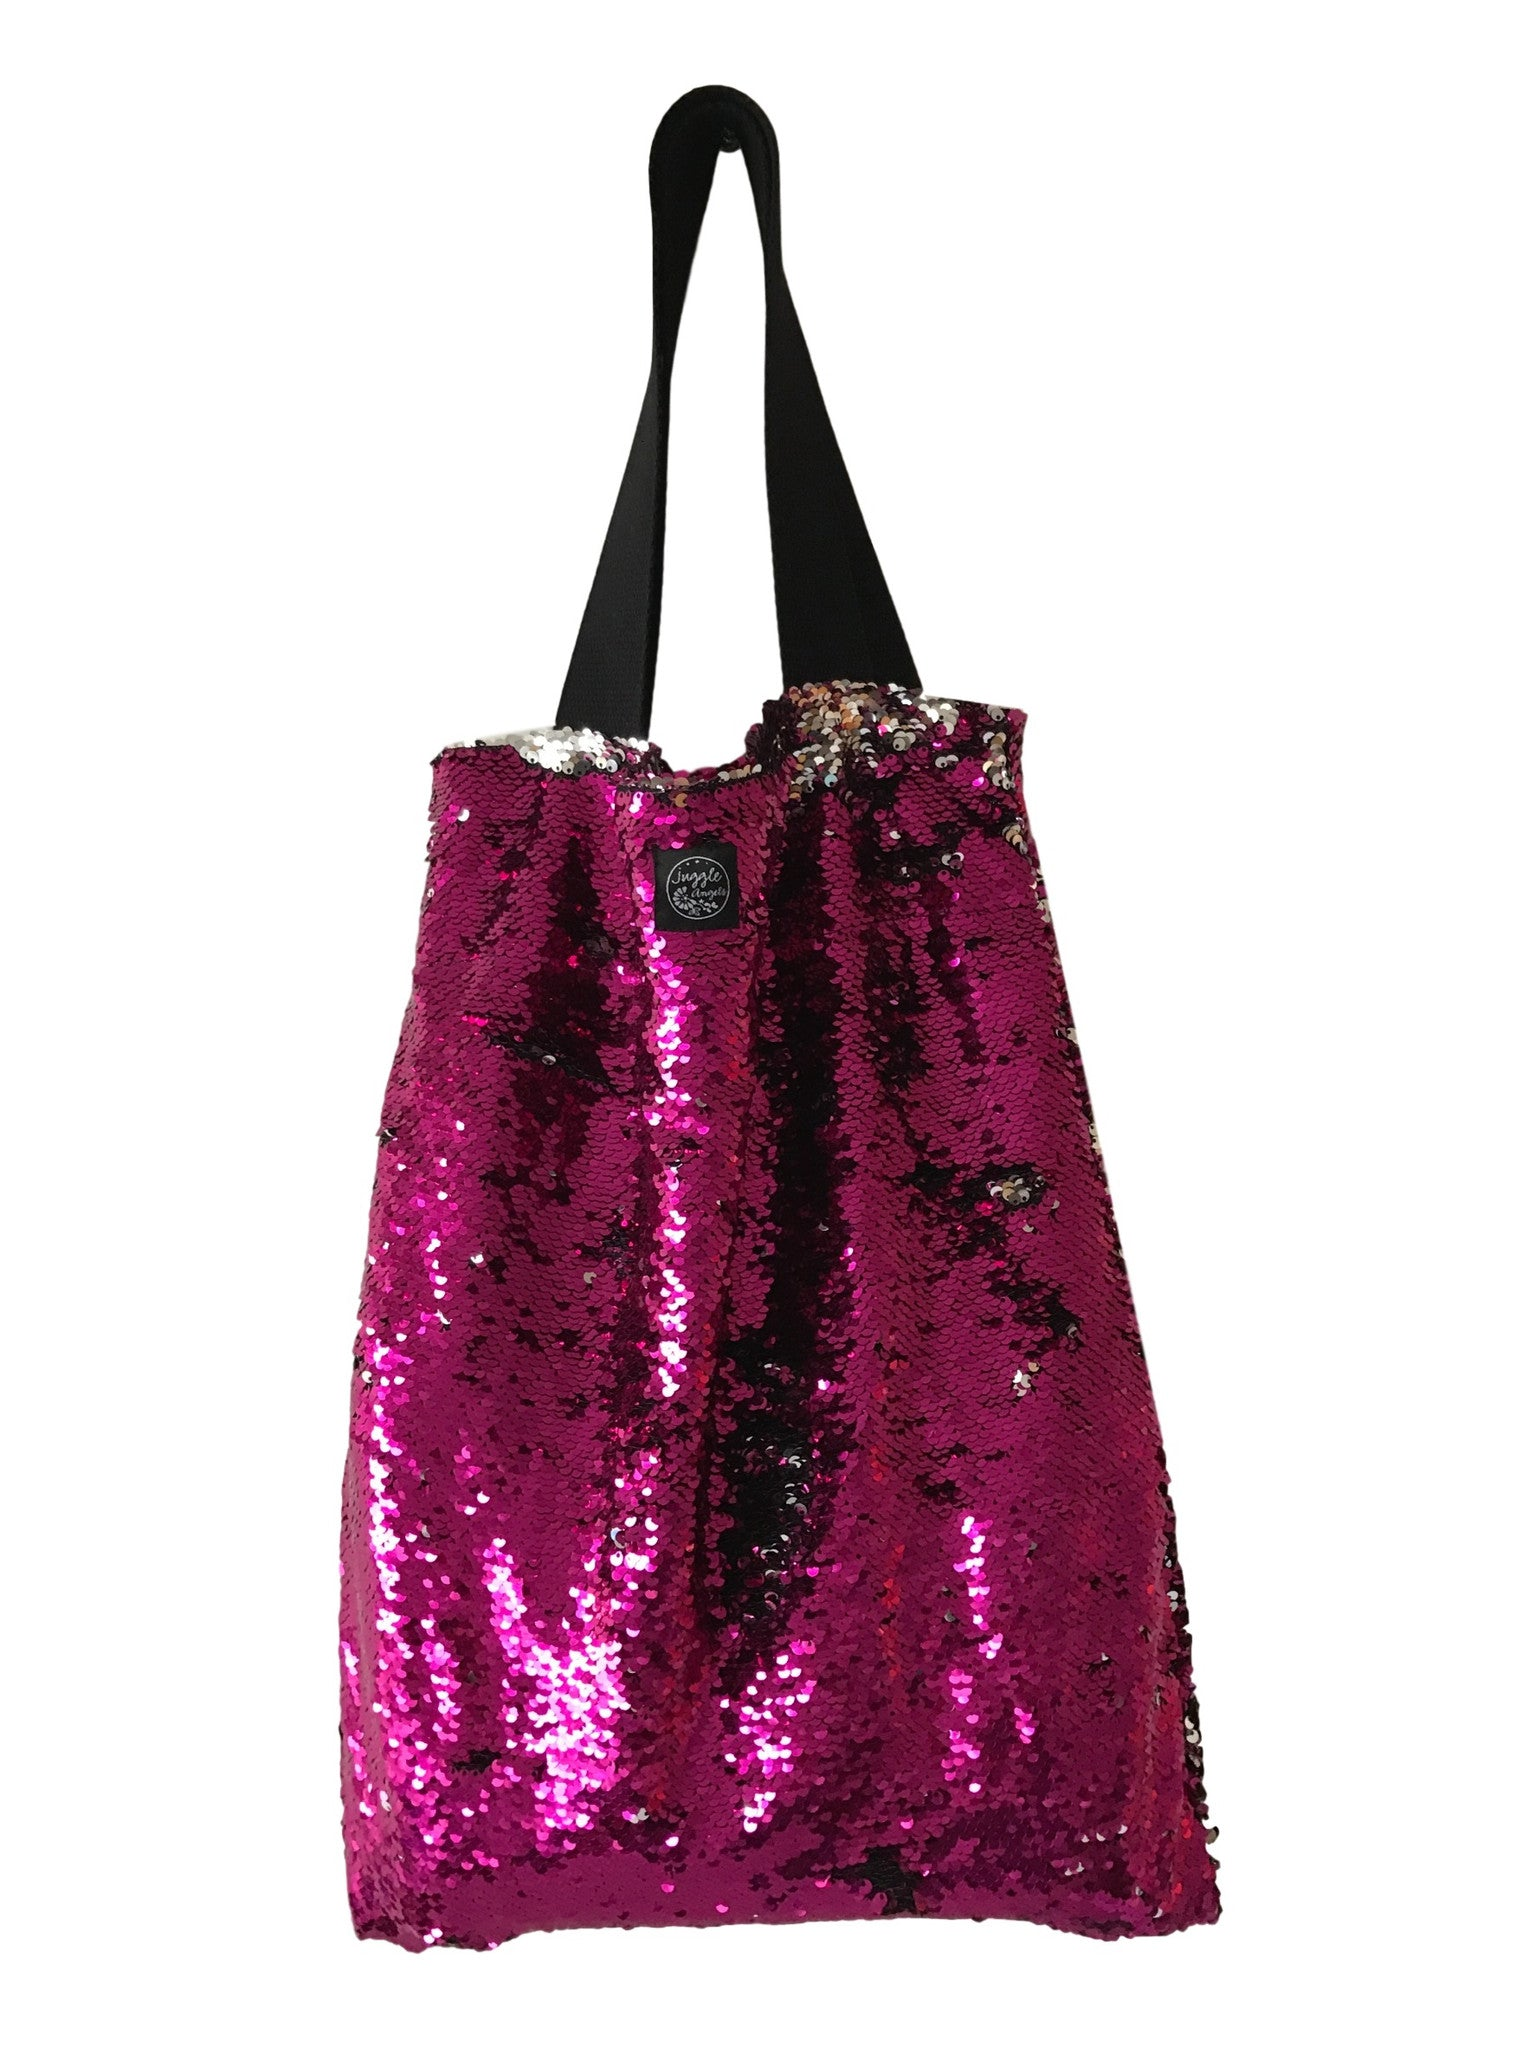 Fuchsia Square Bag